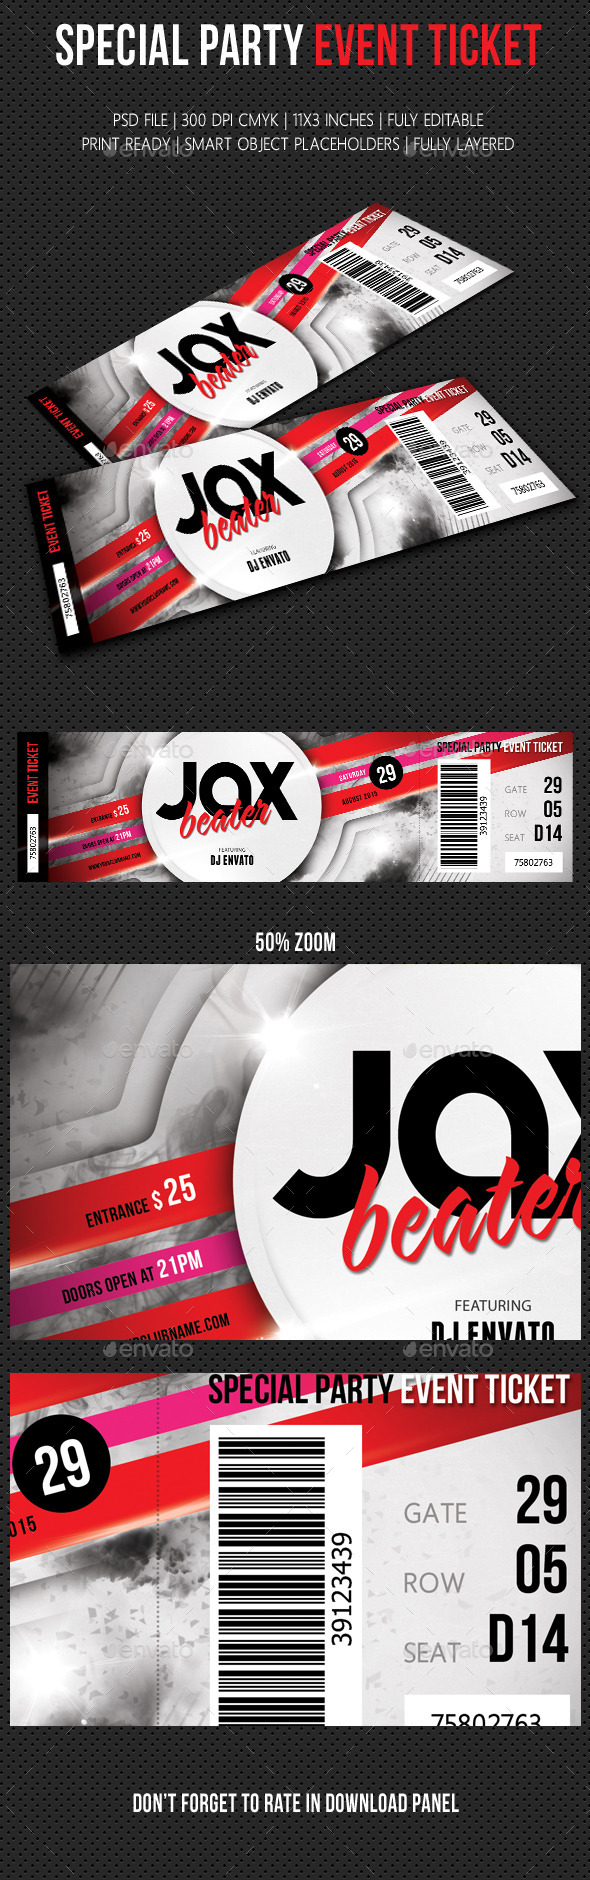 Special Party Event Ticket V04 - Cards & Invites Print Templates